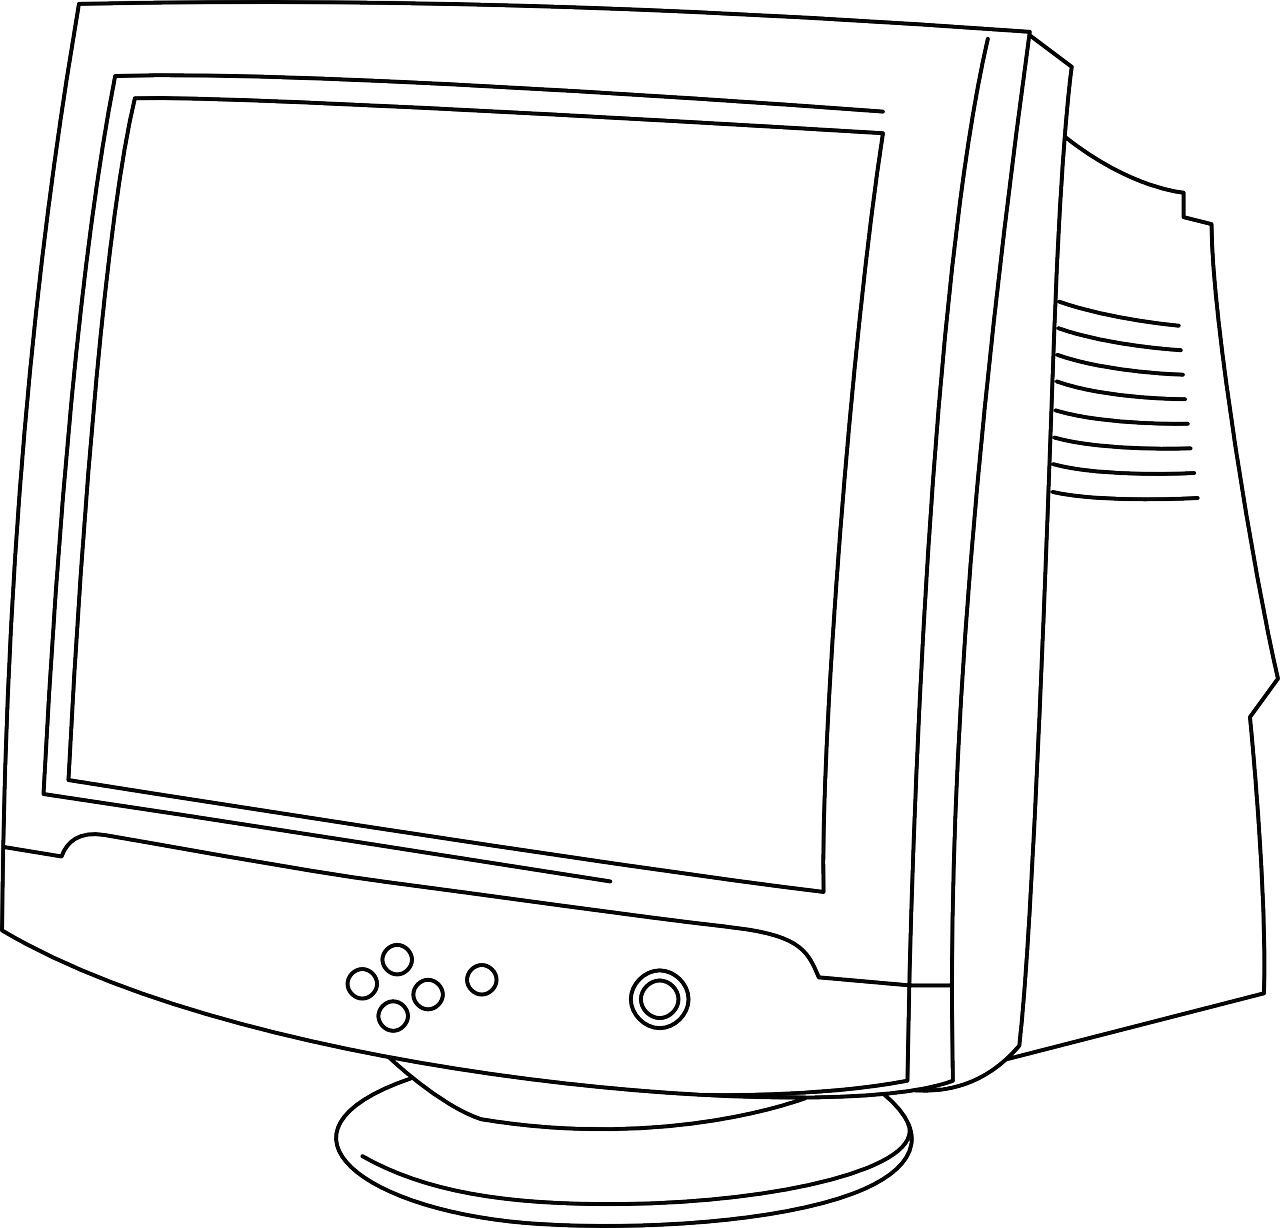 Puter Monitor Screen Free Vector Graphic On Pixabay